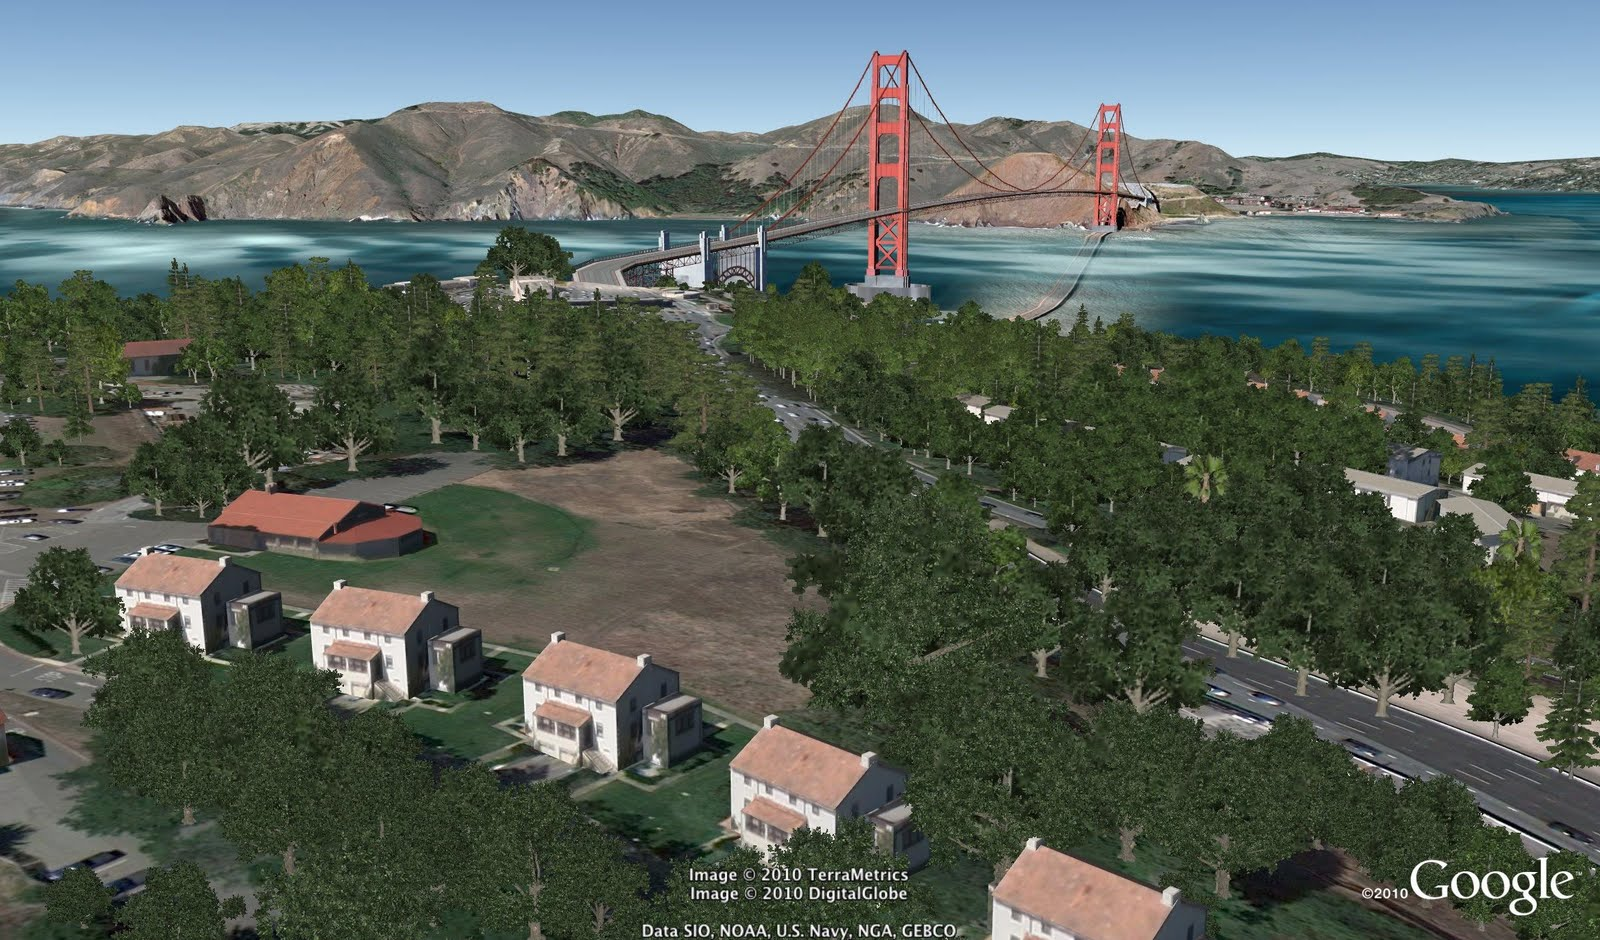 San Francisco - Google Earth 6